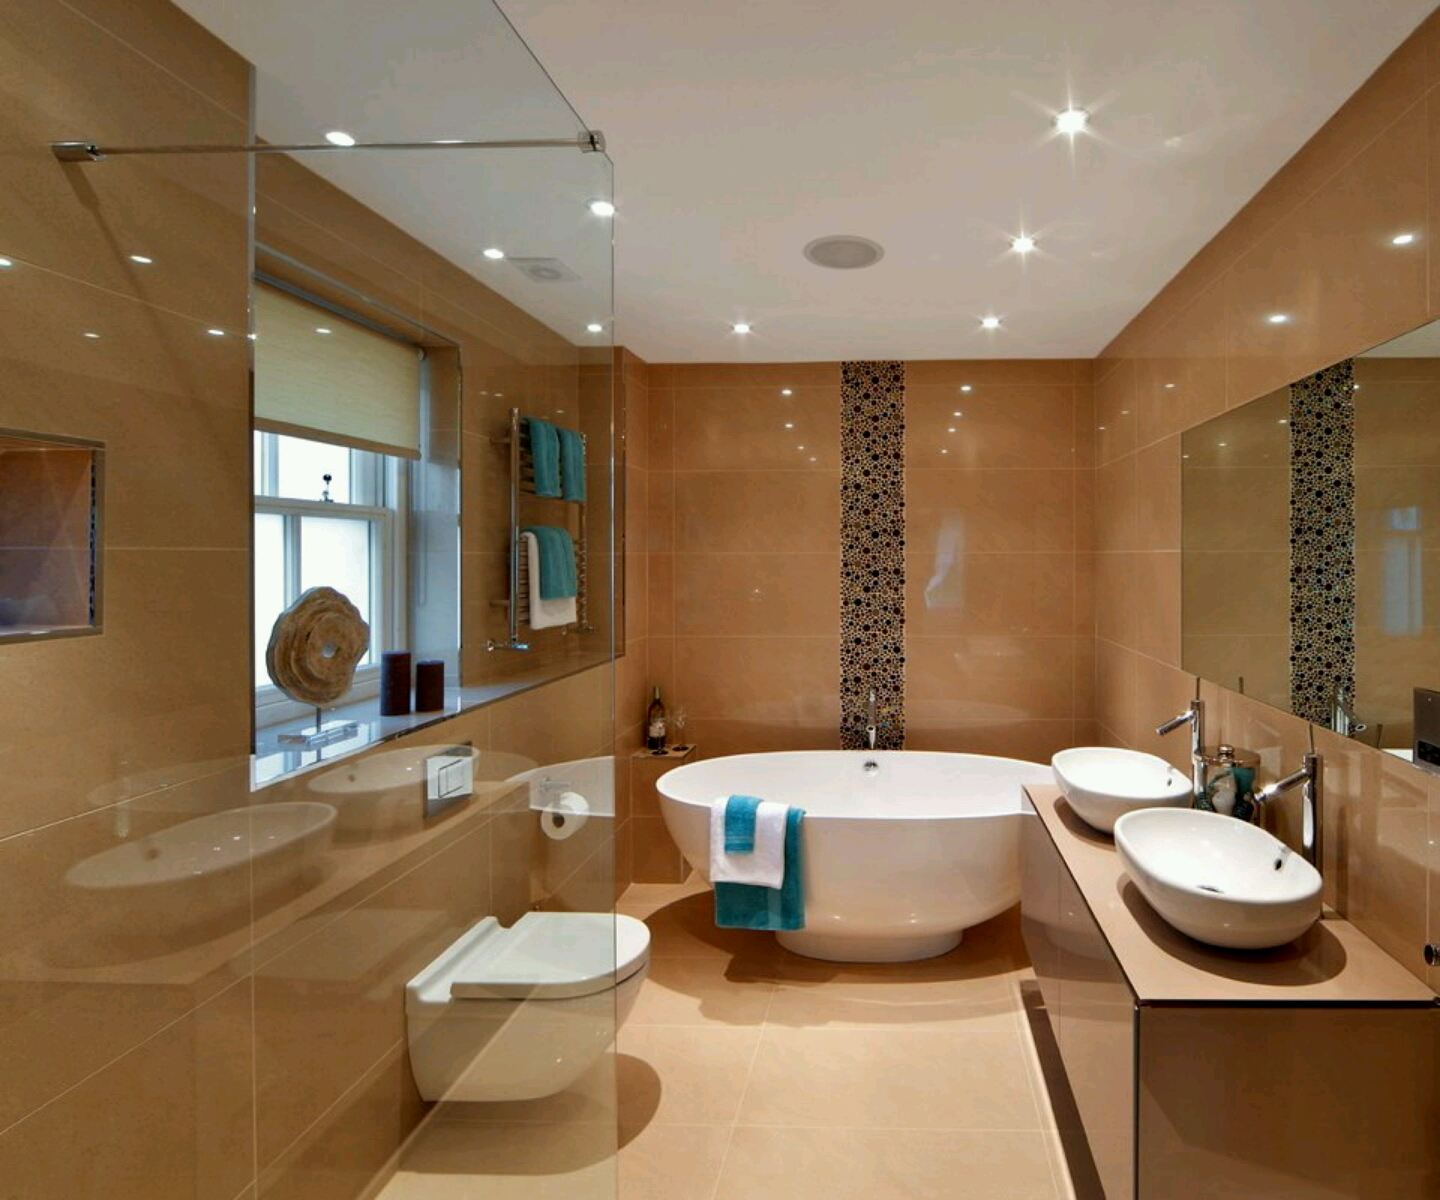 Home Design Ideas Bathroom: New Home Designs Latest.: Luxury Modern Bathrooms Designs